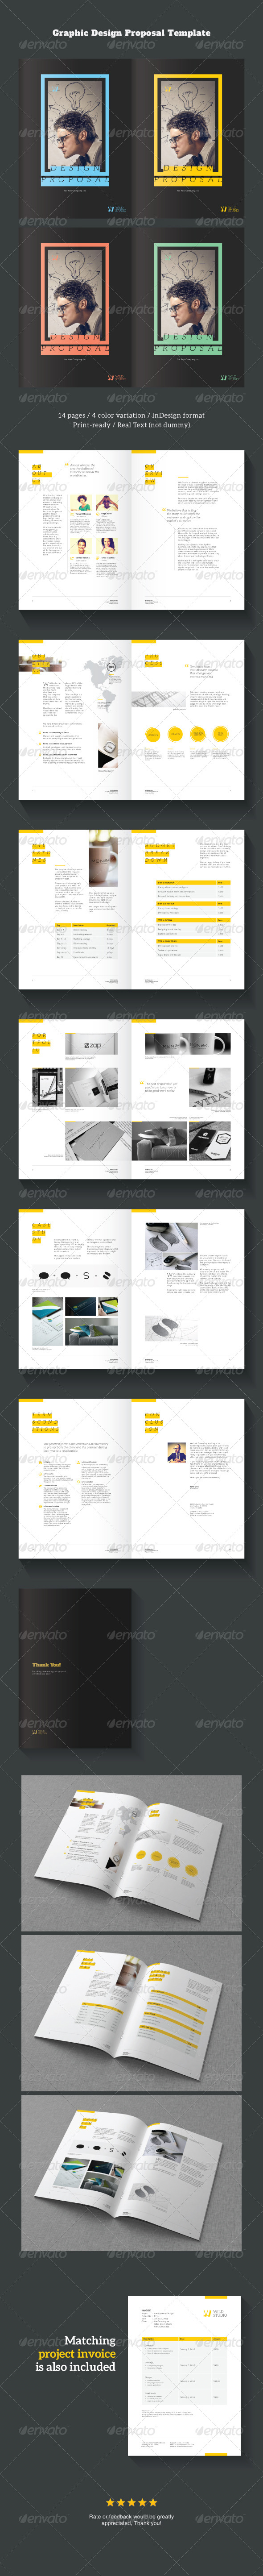 GraphicRiver Graphic Design Project Proposal Template 6500541